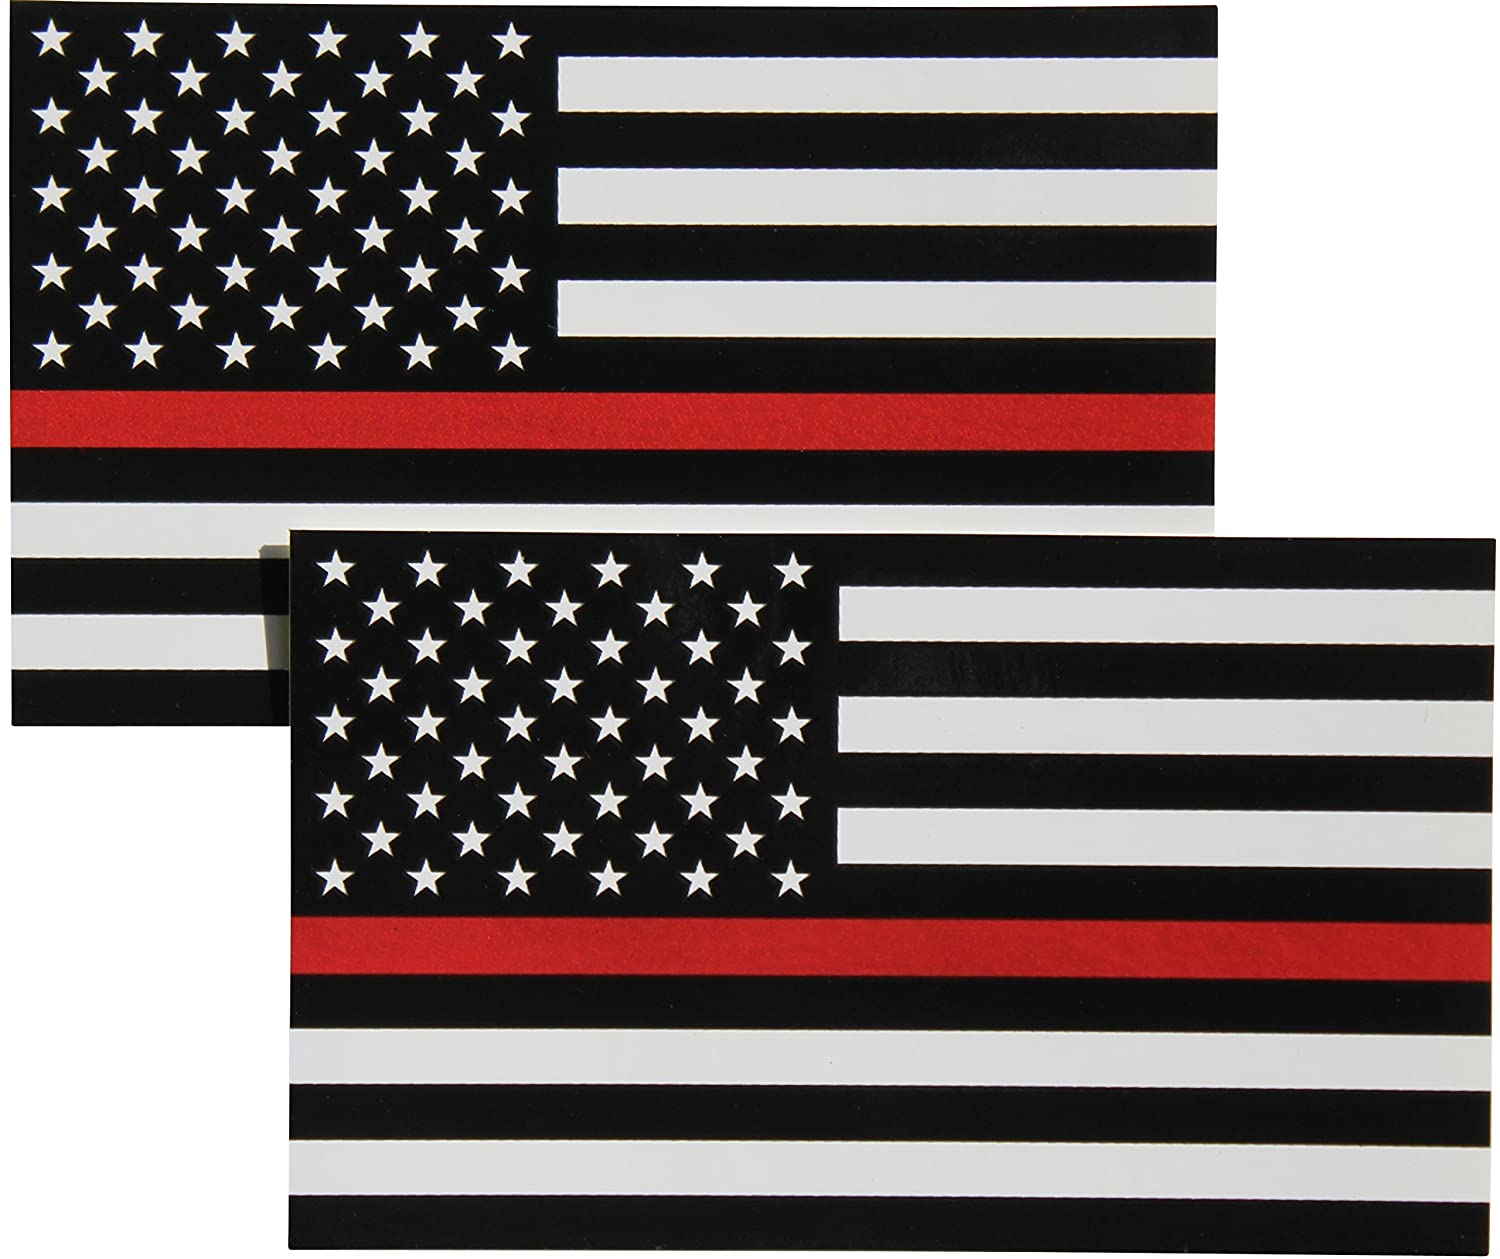 Amazon com thin red line flag decal 3x5 in black white and red american flag sticker for cars trucks and suvs in support of firefighters and emts